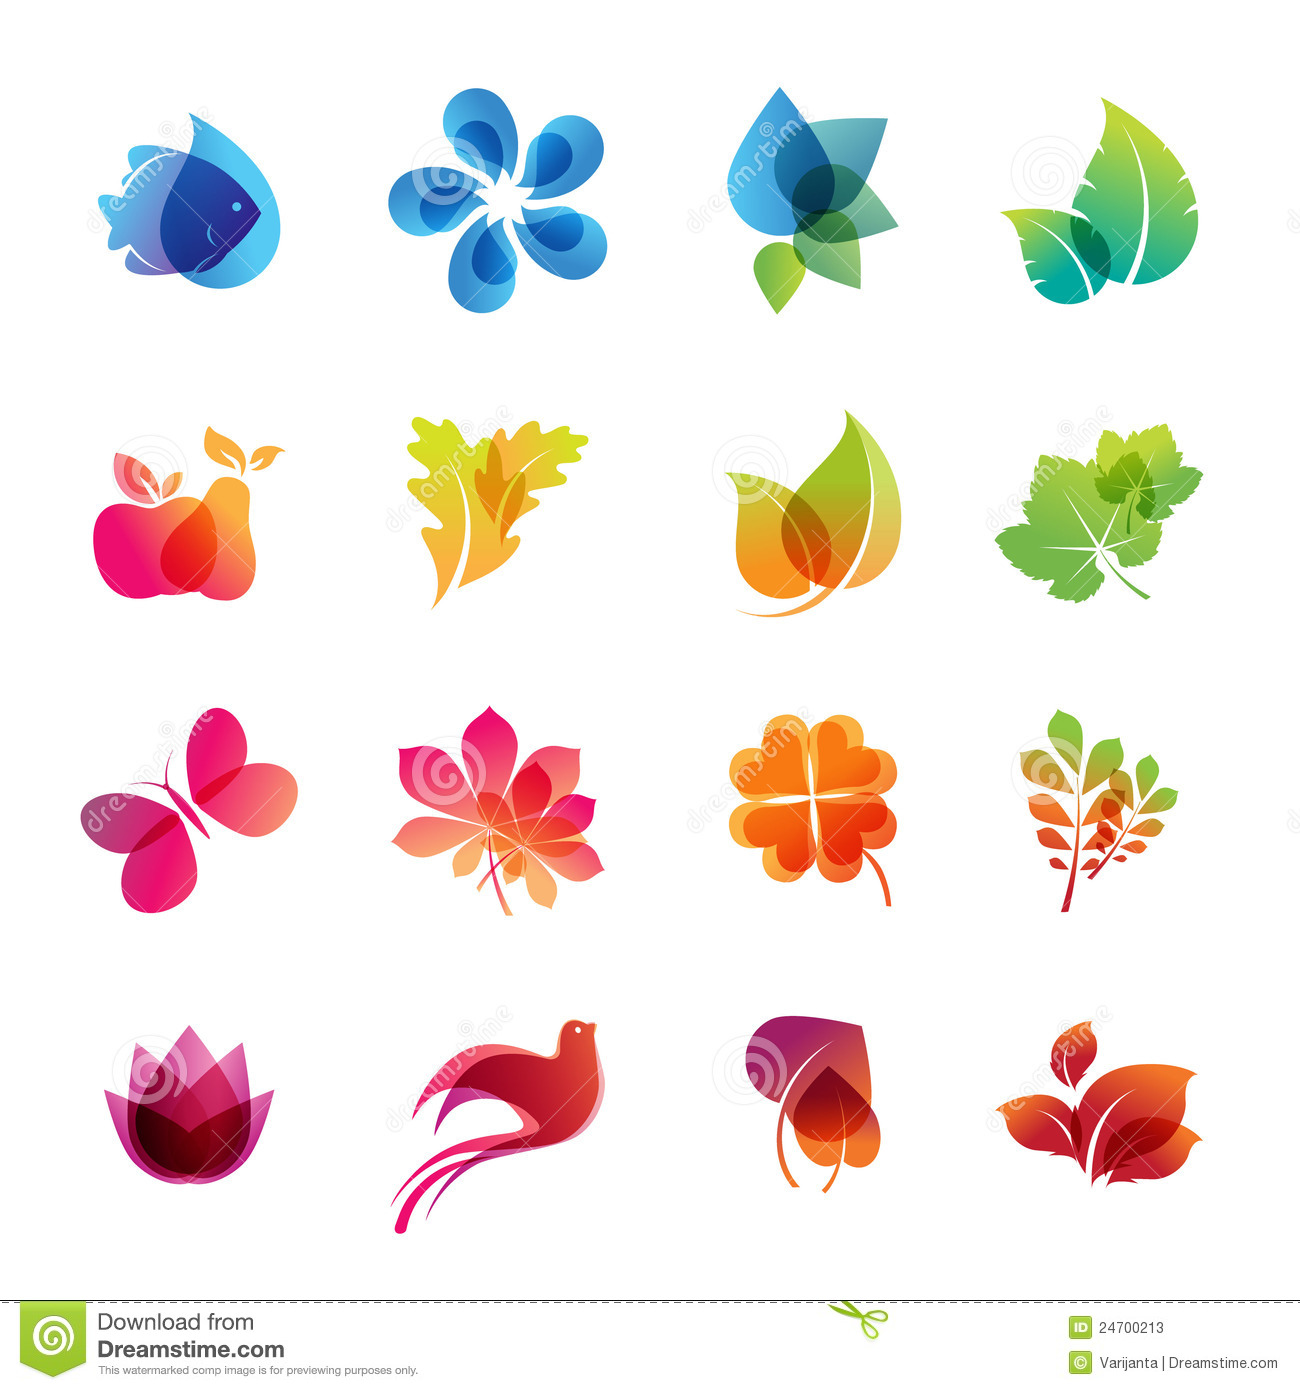 Stock Photos Colorful Nature Icon Set Image24700213 together with Furnace Maintenance further Logo Auto furthermore About Us furthermore Baby And Kids Logo. on plumbing logos for business